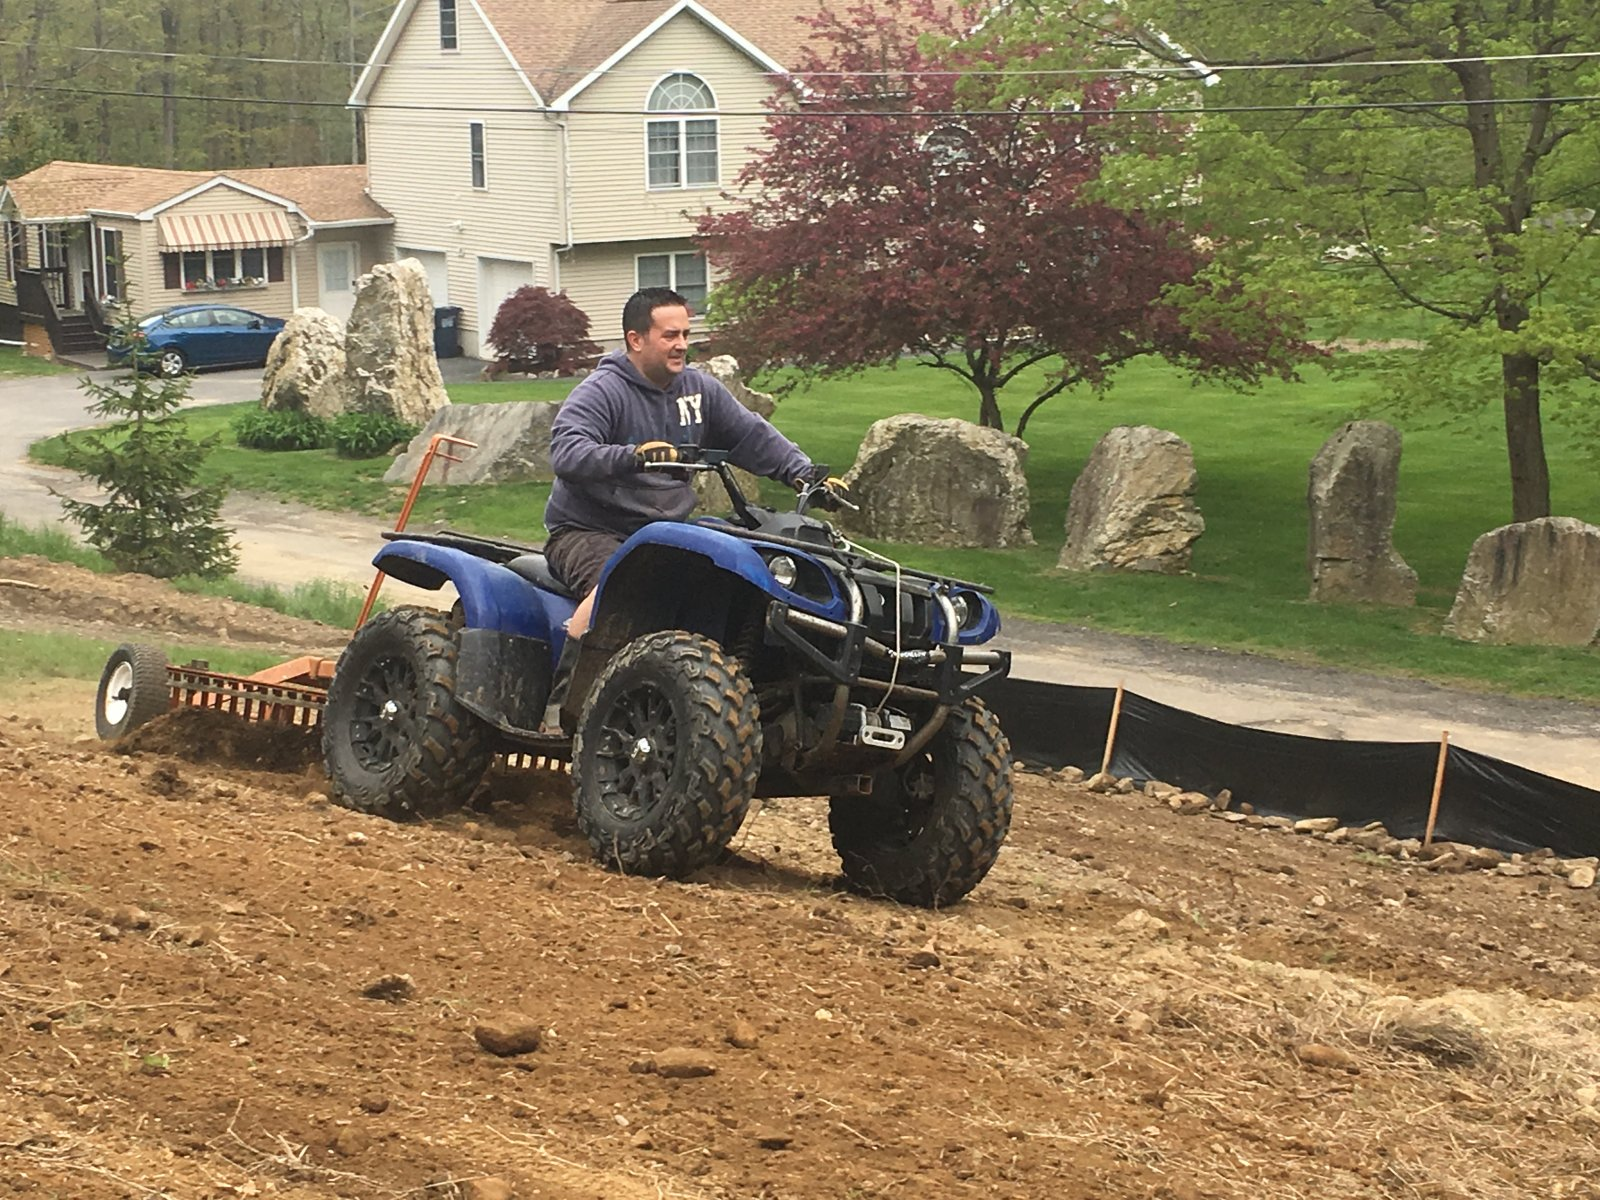 Me on the Grizzly pulling the ATV Rake